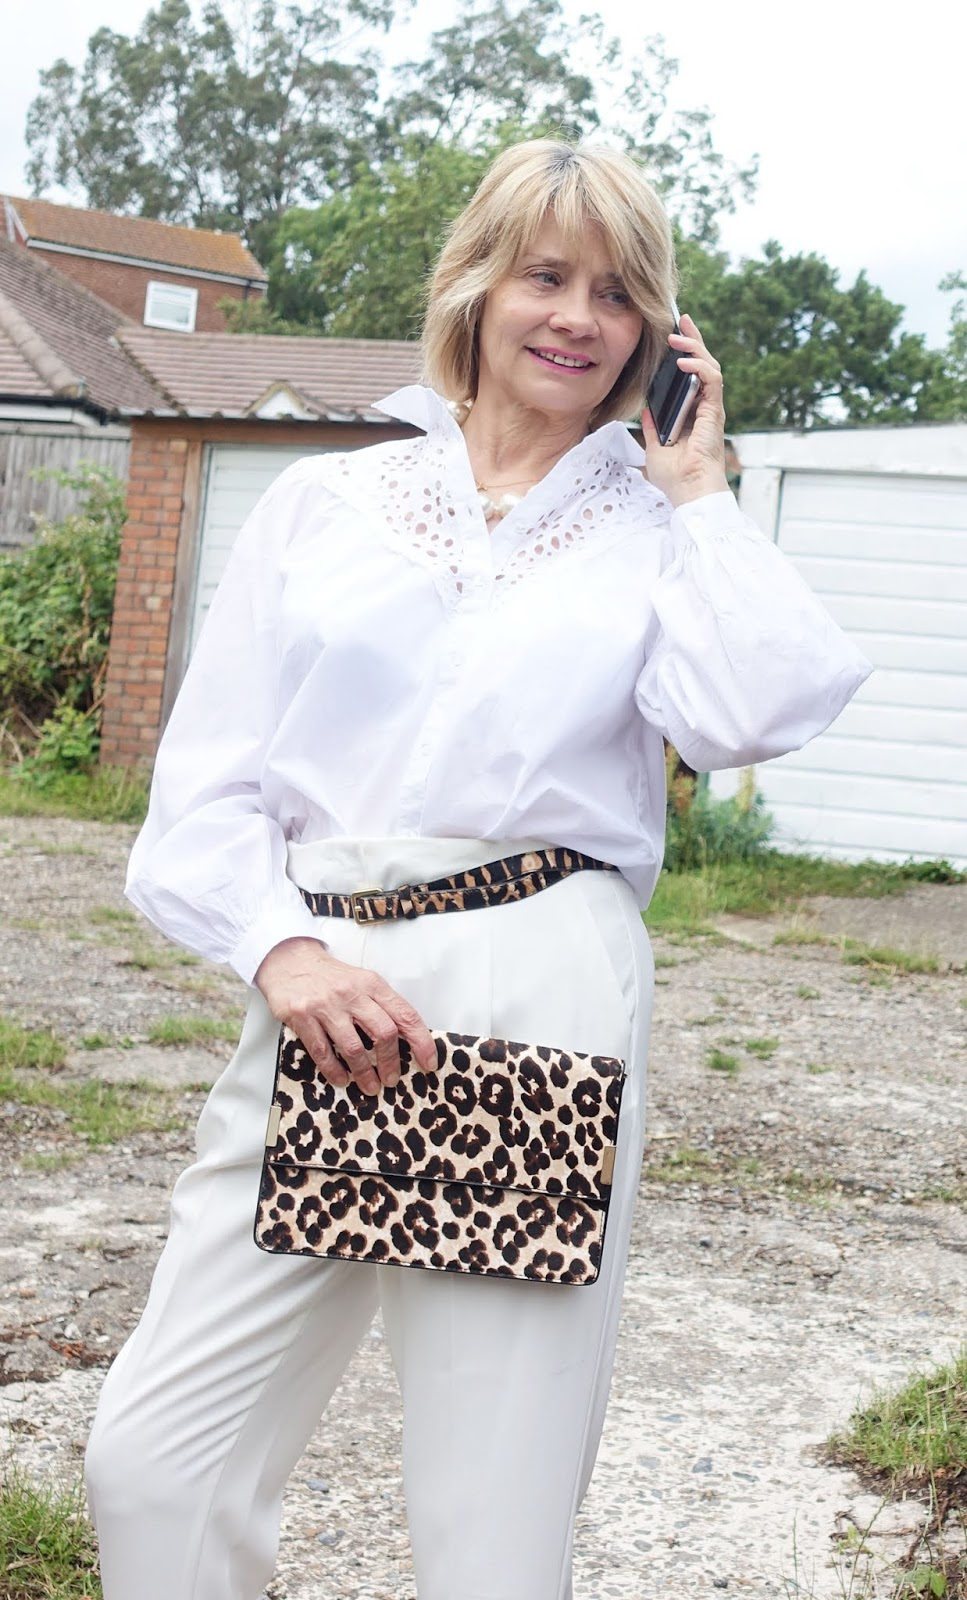 Broderie blouse and white trousers with leopard print accessories worn by over-50s style blogger Gail Hanlon from Is This Mutton